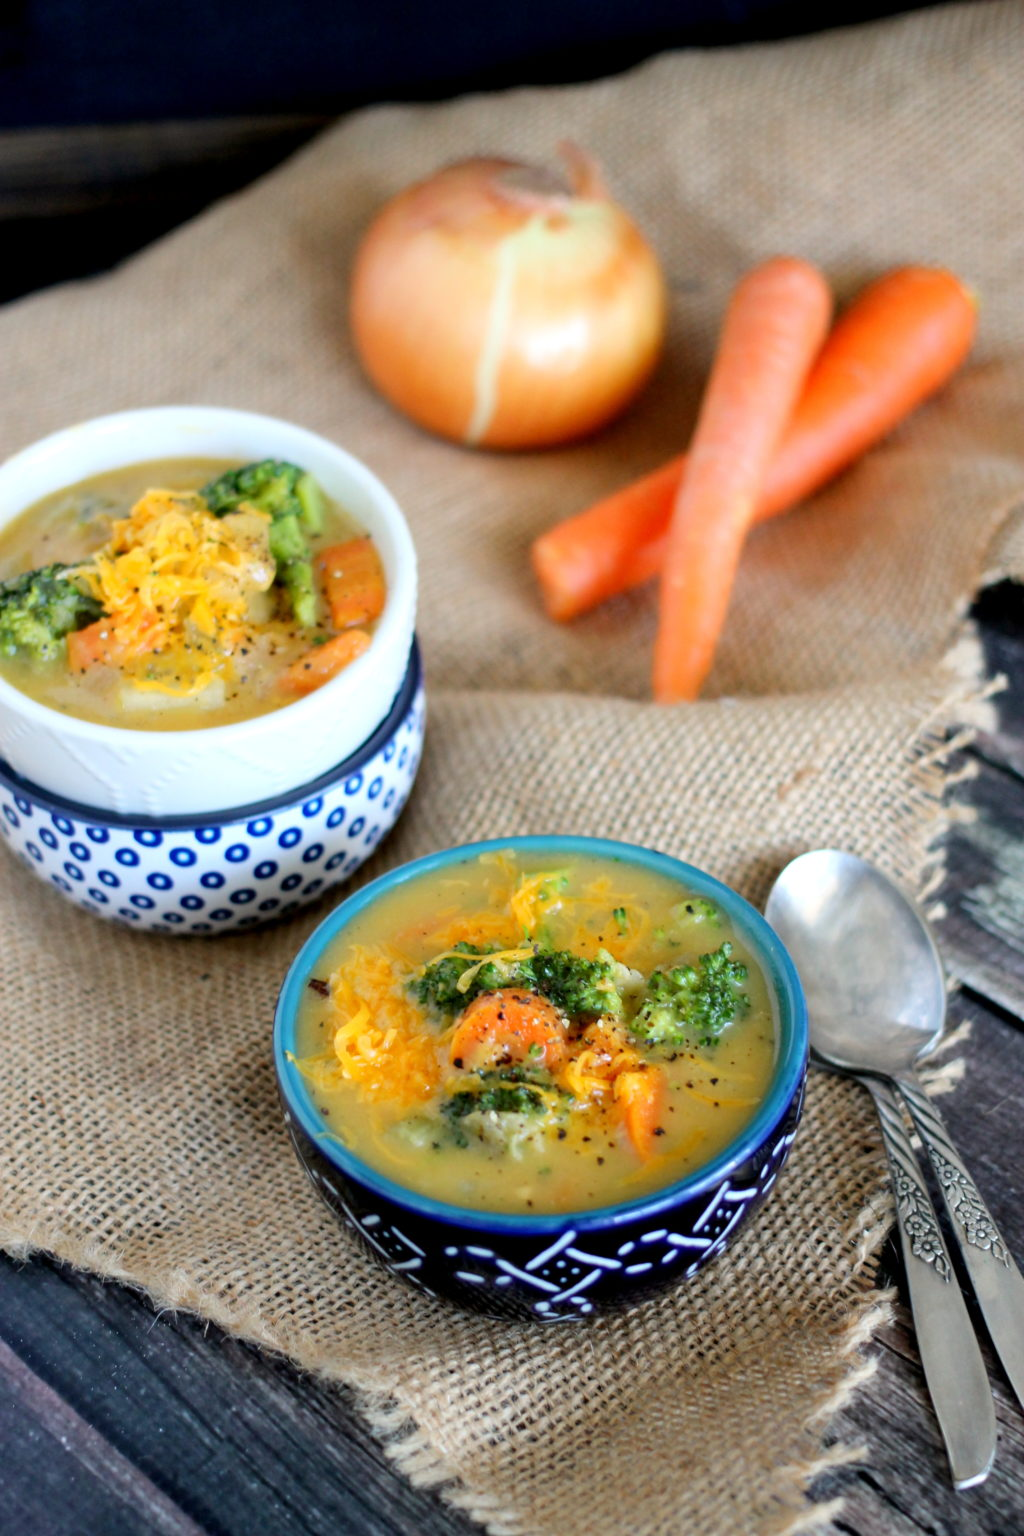 This Skinny Cheesy Vegetable Chowder is a hearty chowder reduces the fat and calories (only 160 per serving) without sacrificing any flavor! Seriously delicious and so easy to make!